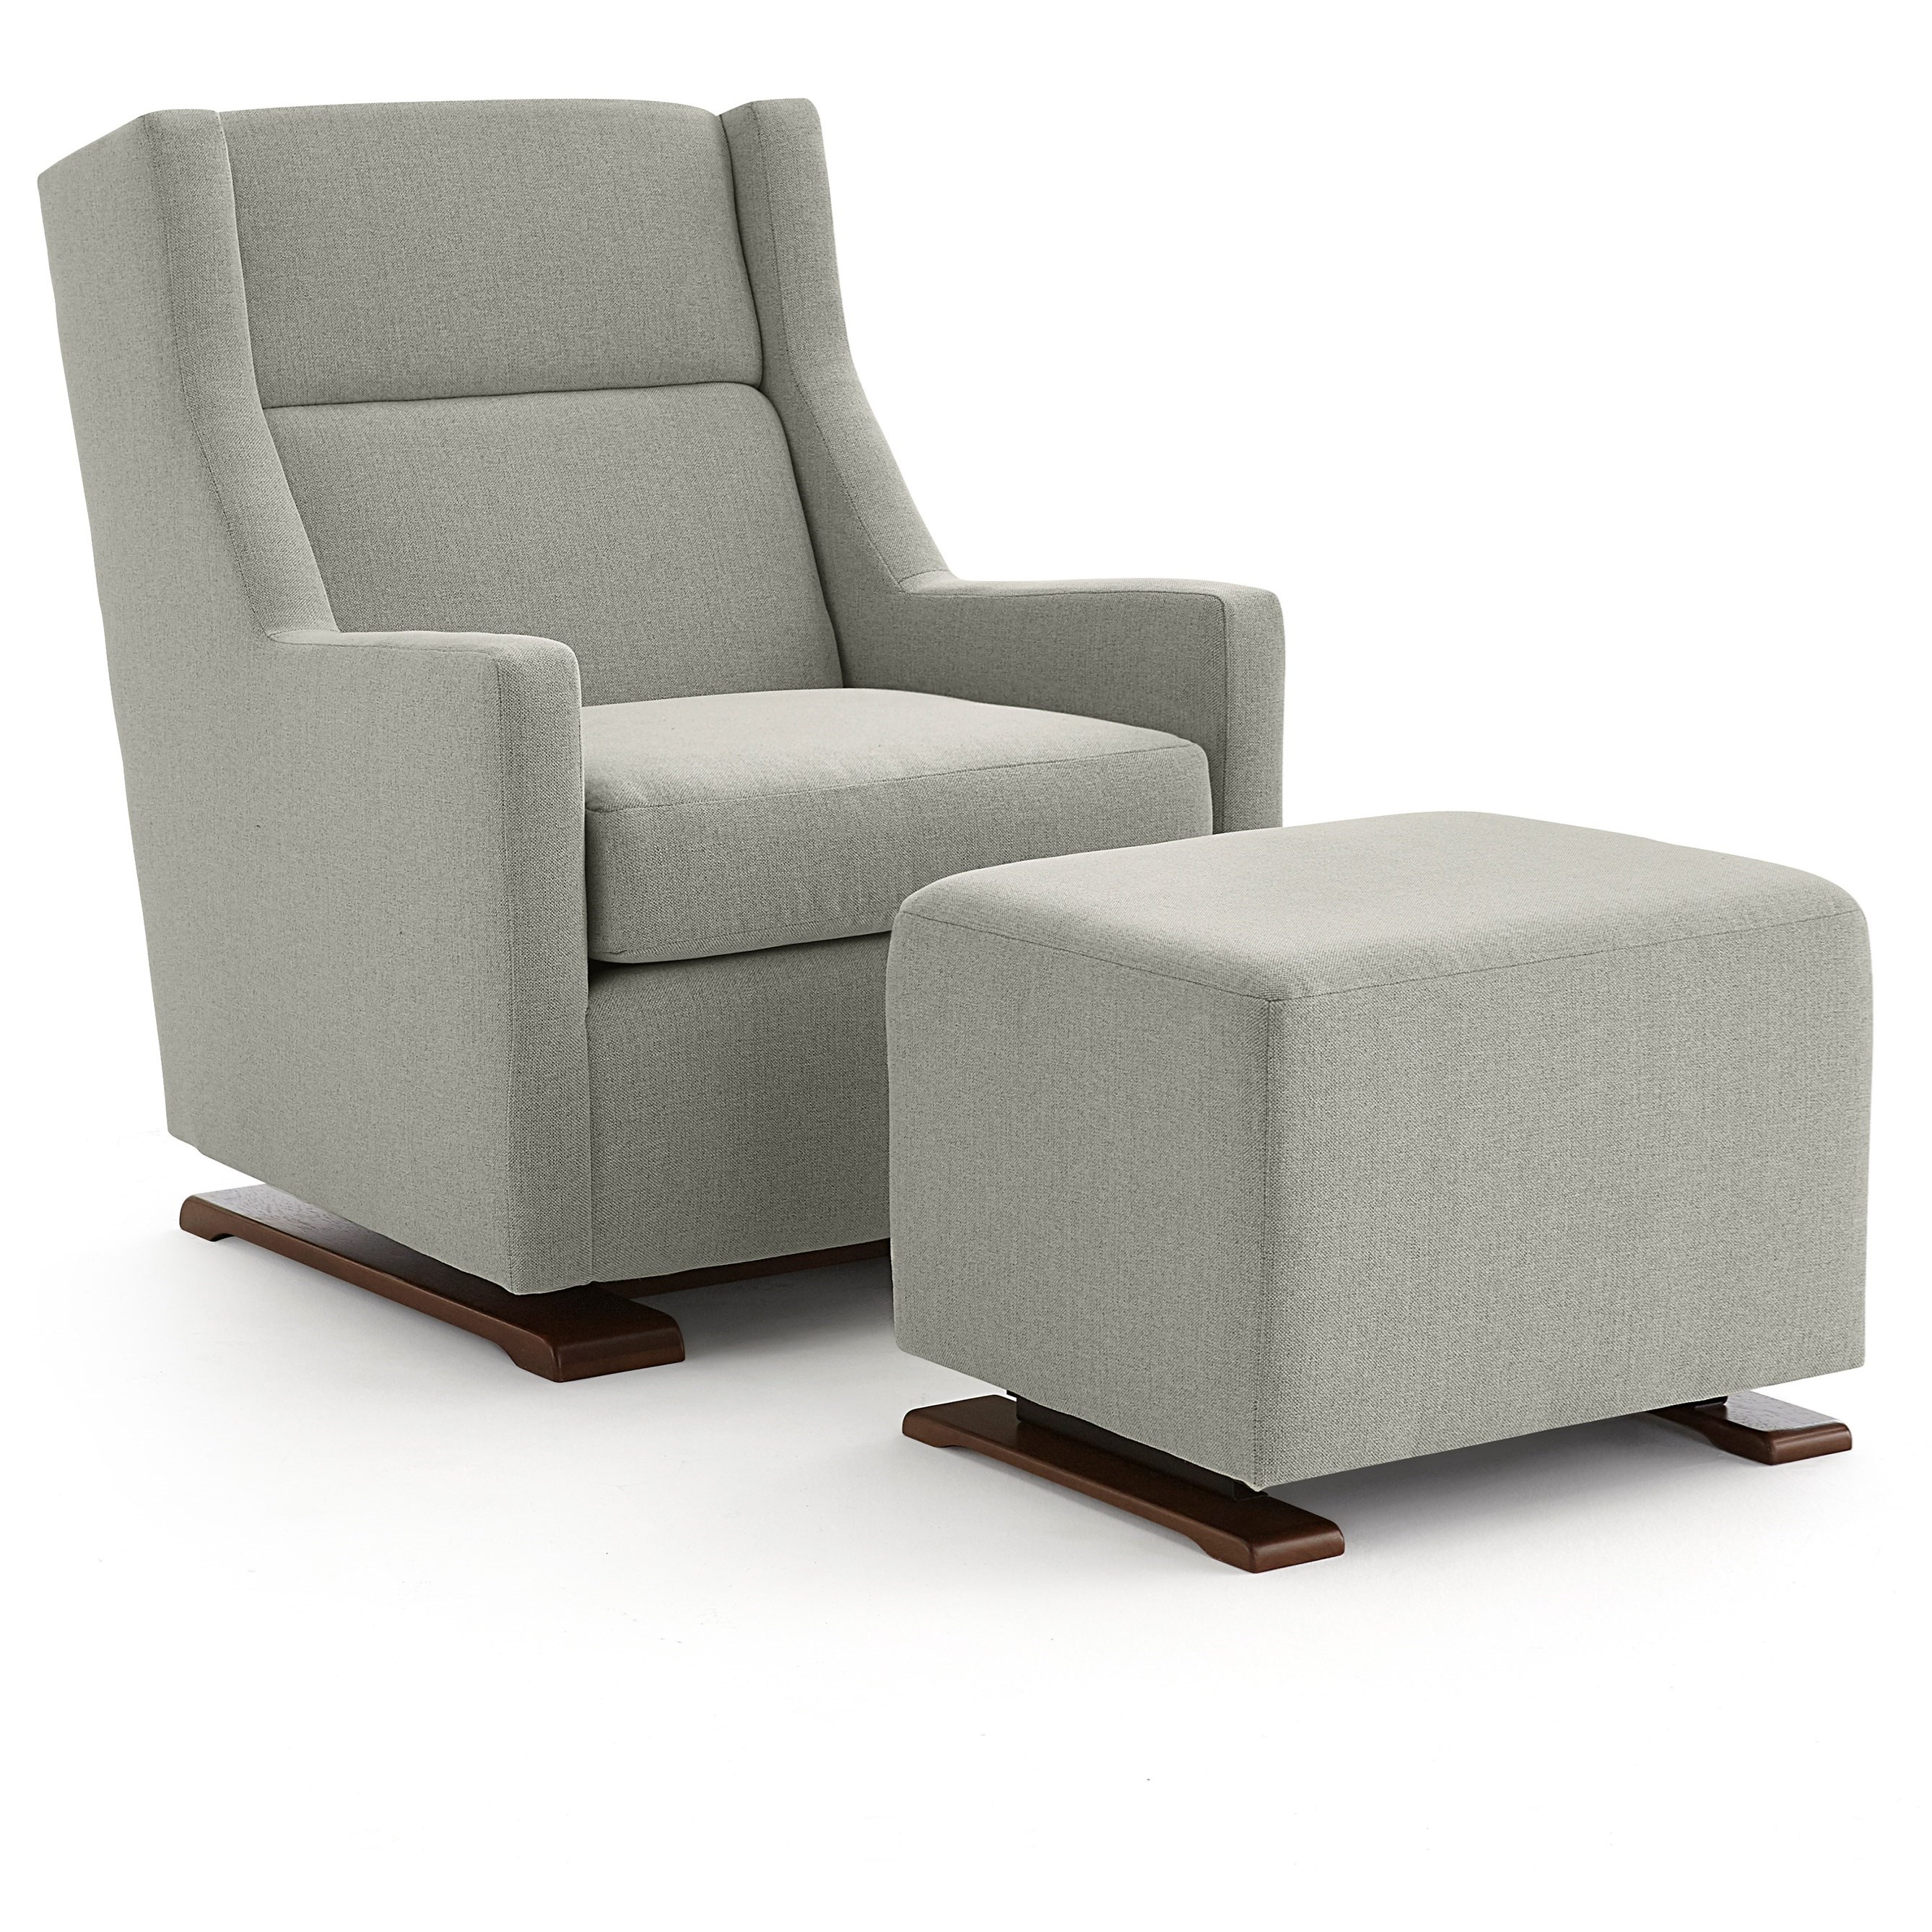 Casual Swivel Gliding Chair With Wood Runners And Gliding